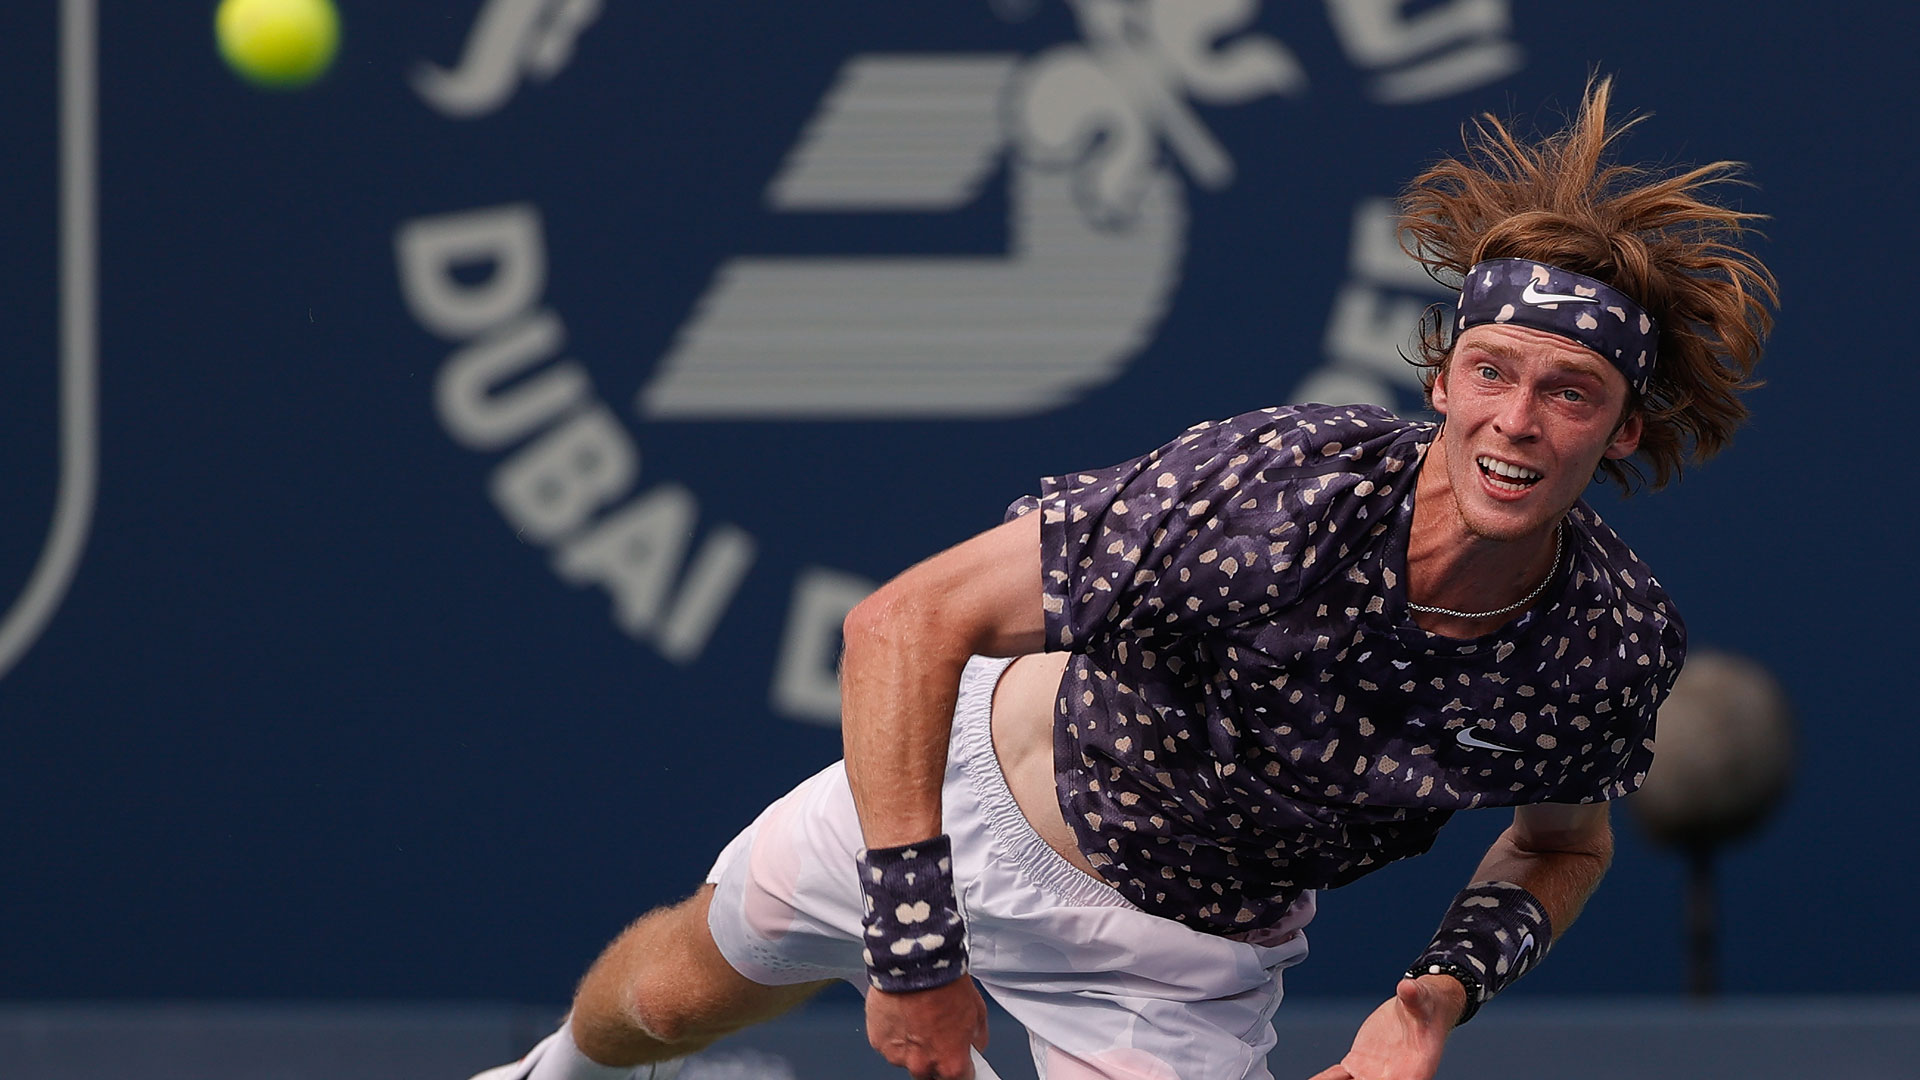 rublev-dubai-2020-wednesday